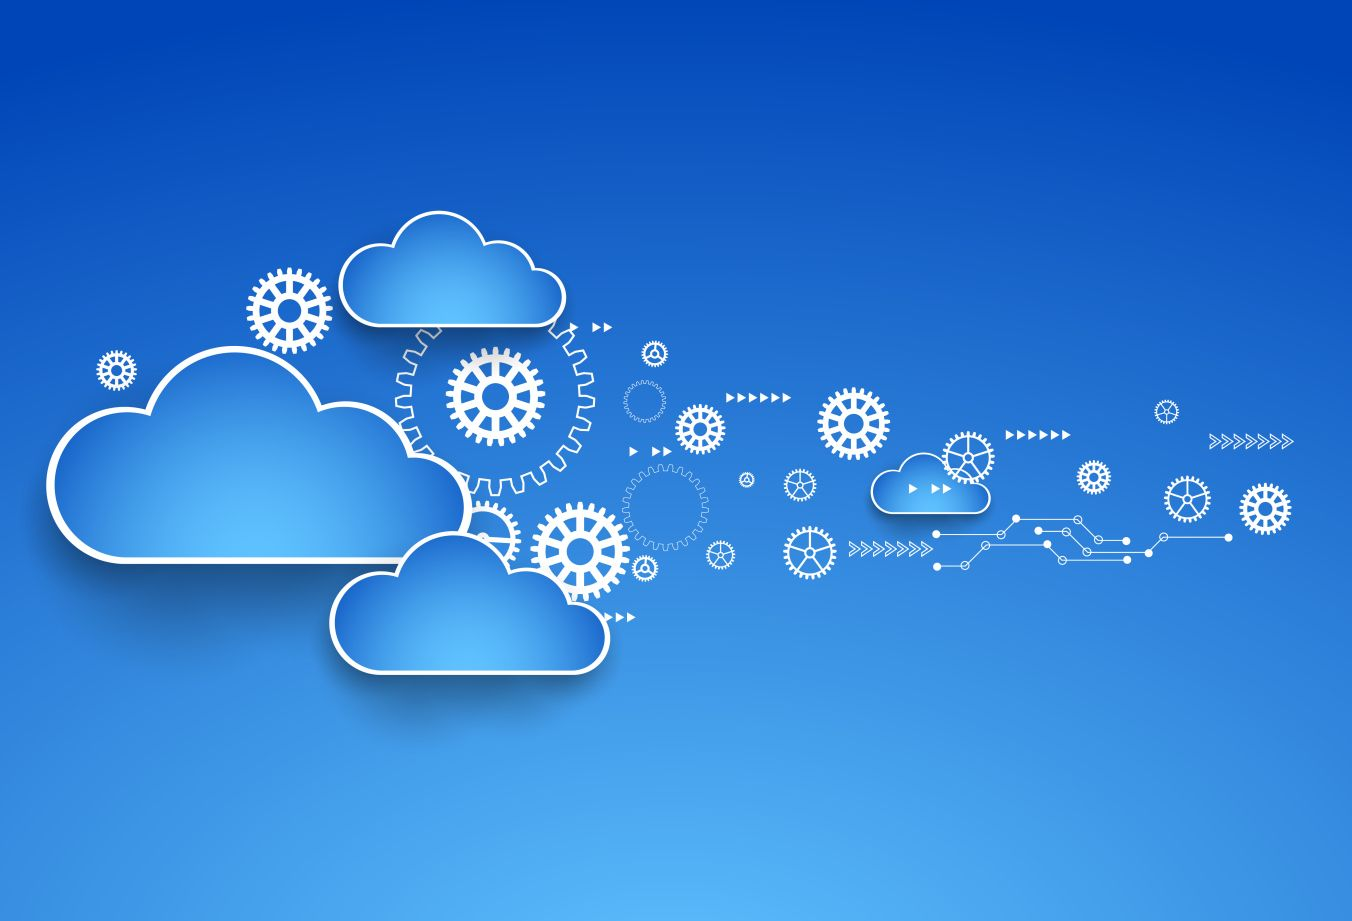 Why Cloud Computing Will Shake Up Security Fog Computing Cloud Computing Cloud Infrastructure